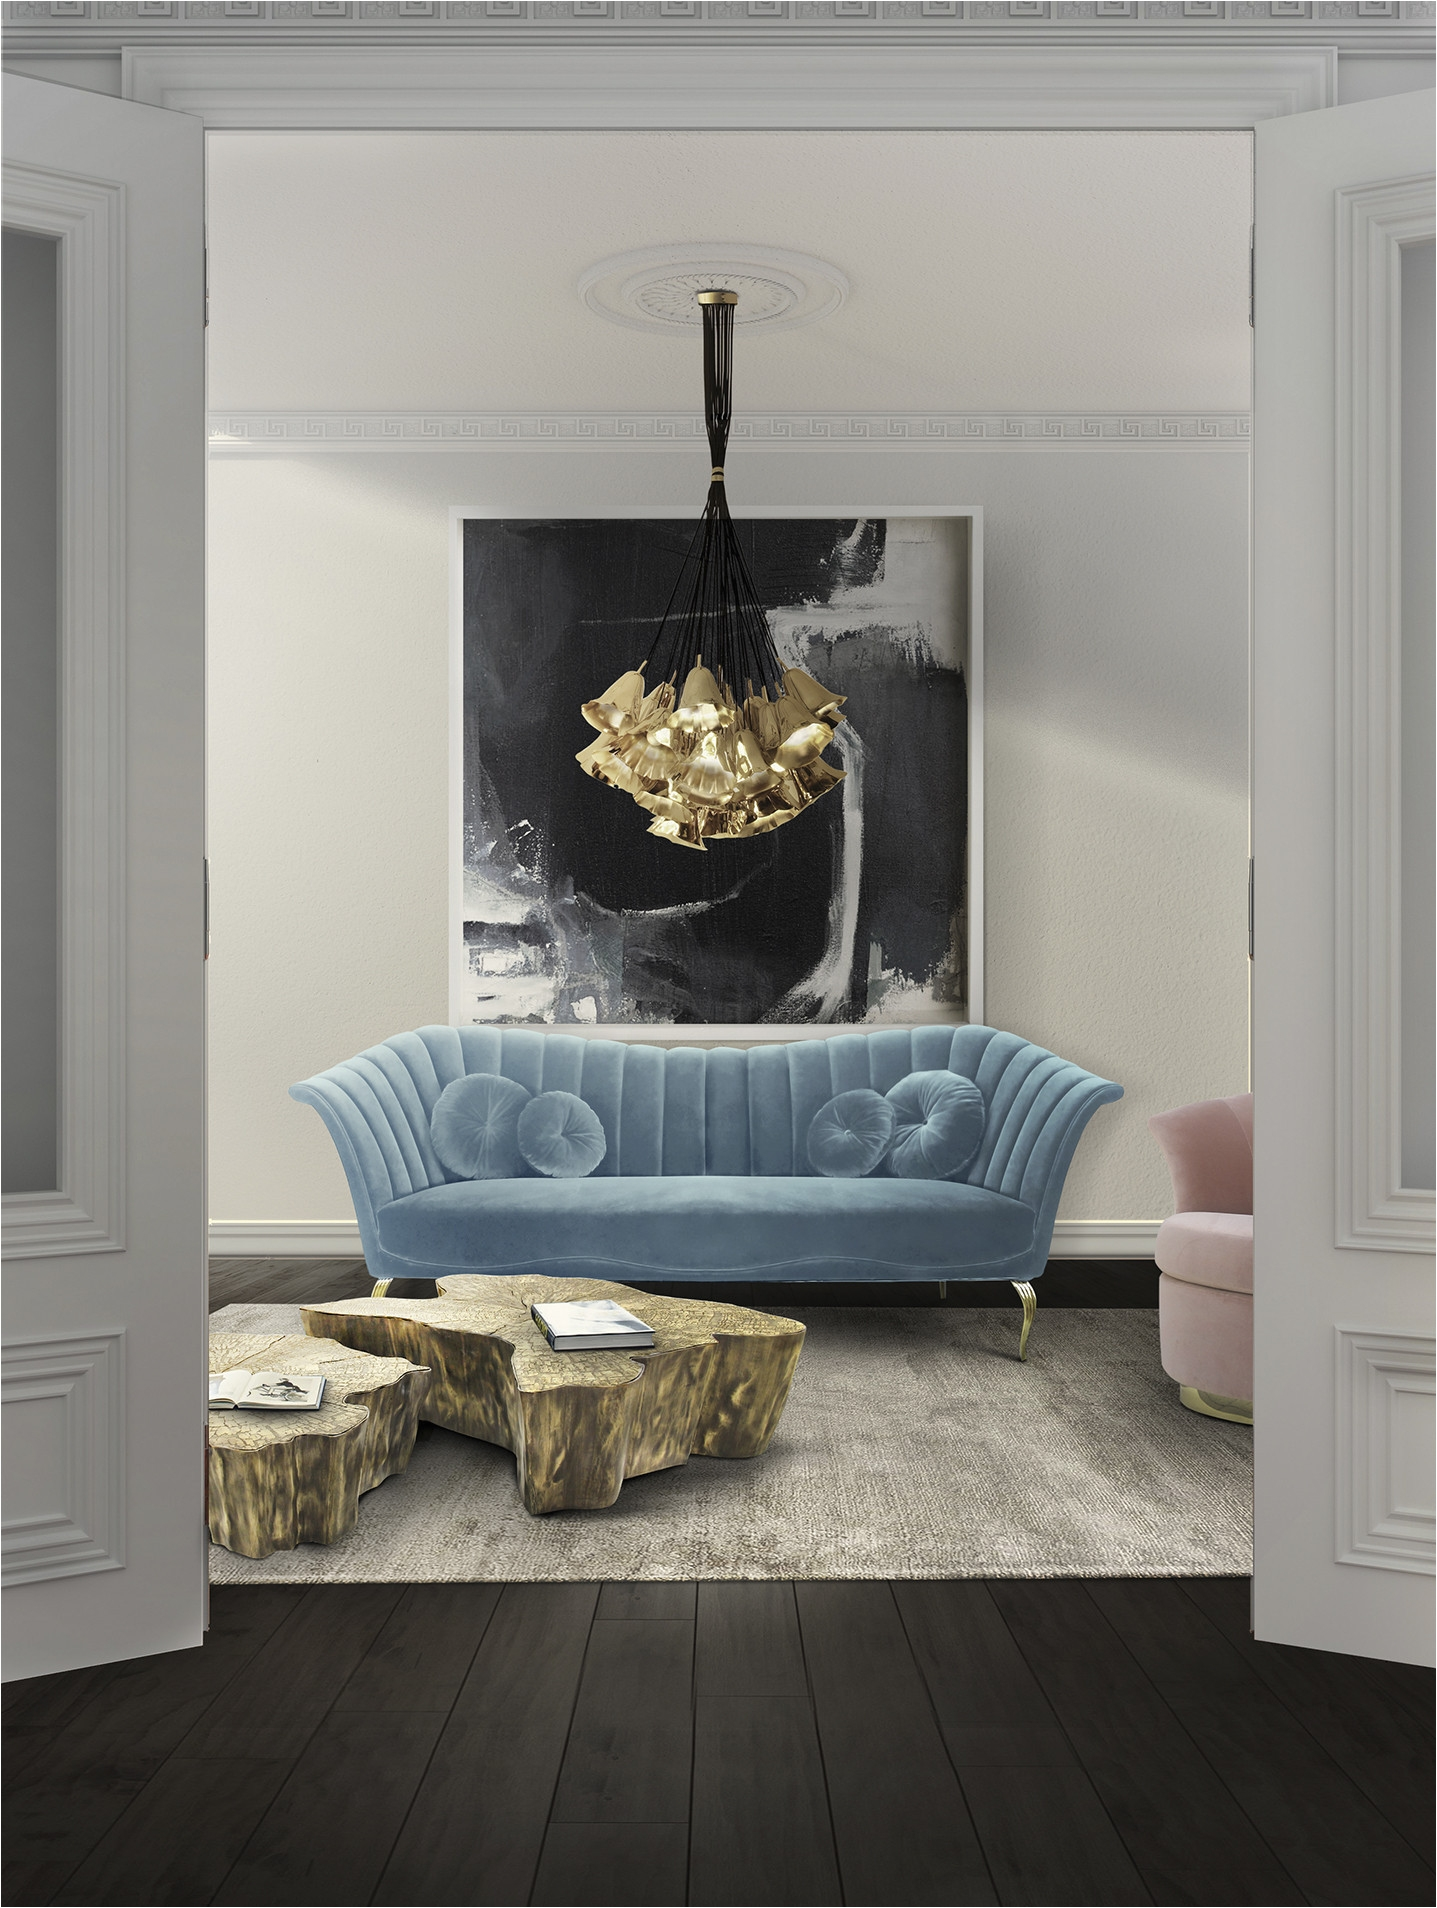 artistic decor for bedroom with living room traditional decorating ideas awesome shaker chairs 0d